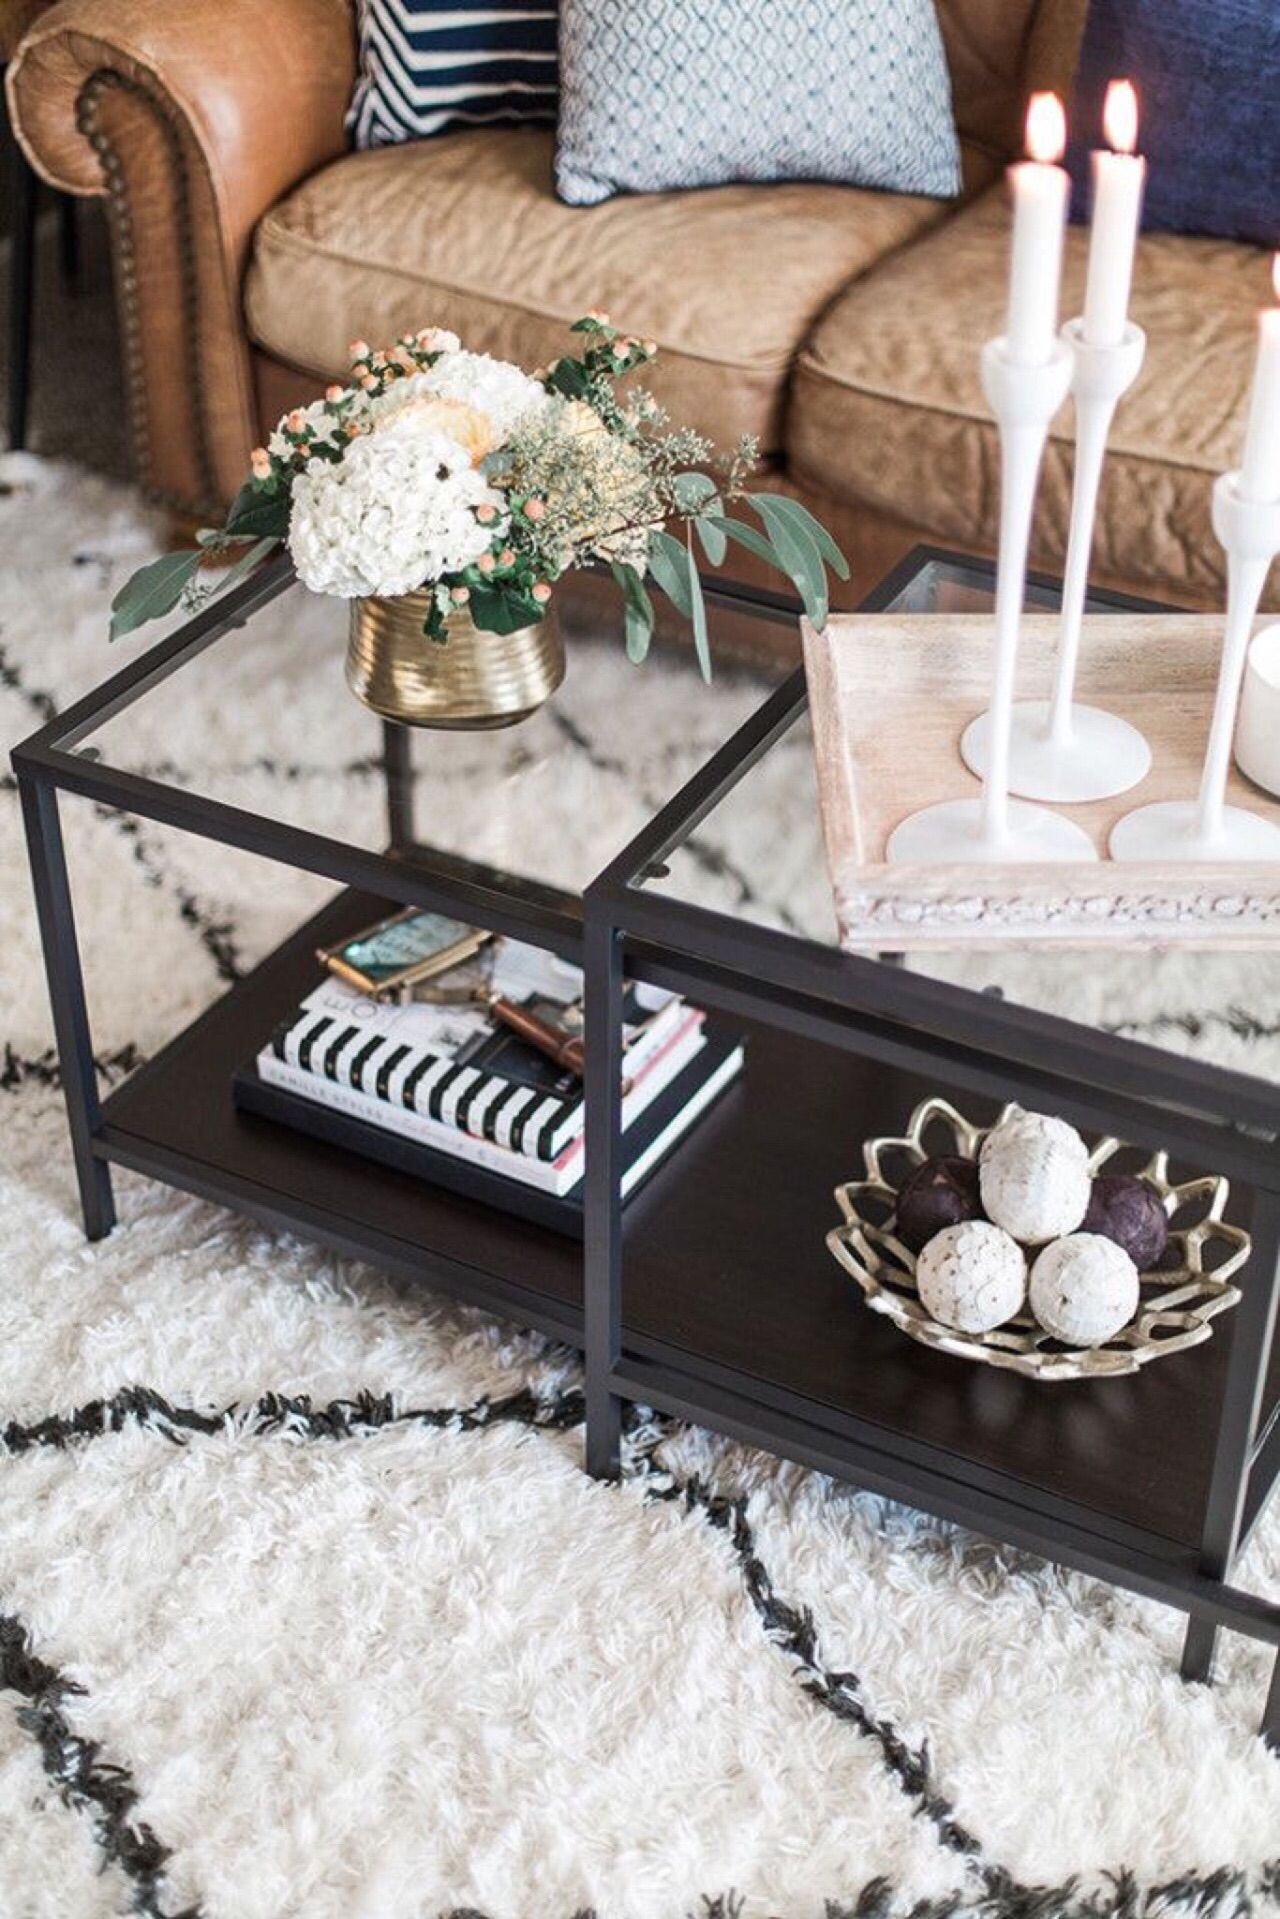 Pin By Navo Wickramasinghe On Living Space Ikea Side Table Decorating Coffee Tables Apartment Decor [ 1919 x 1280 Pixel ]